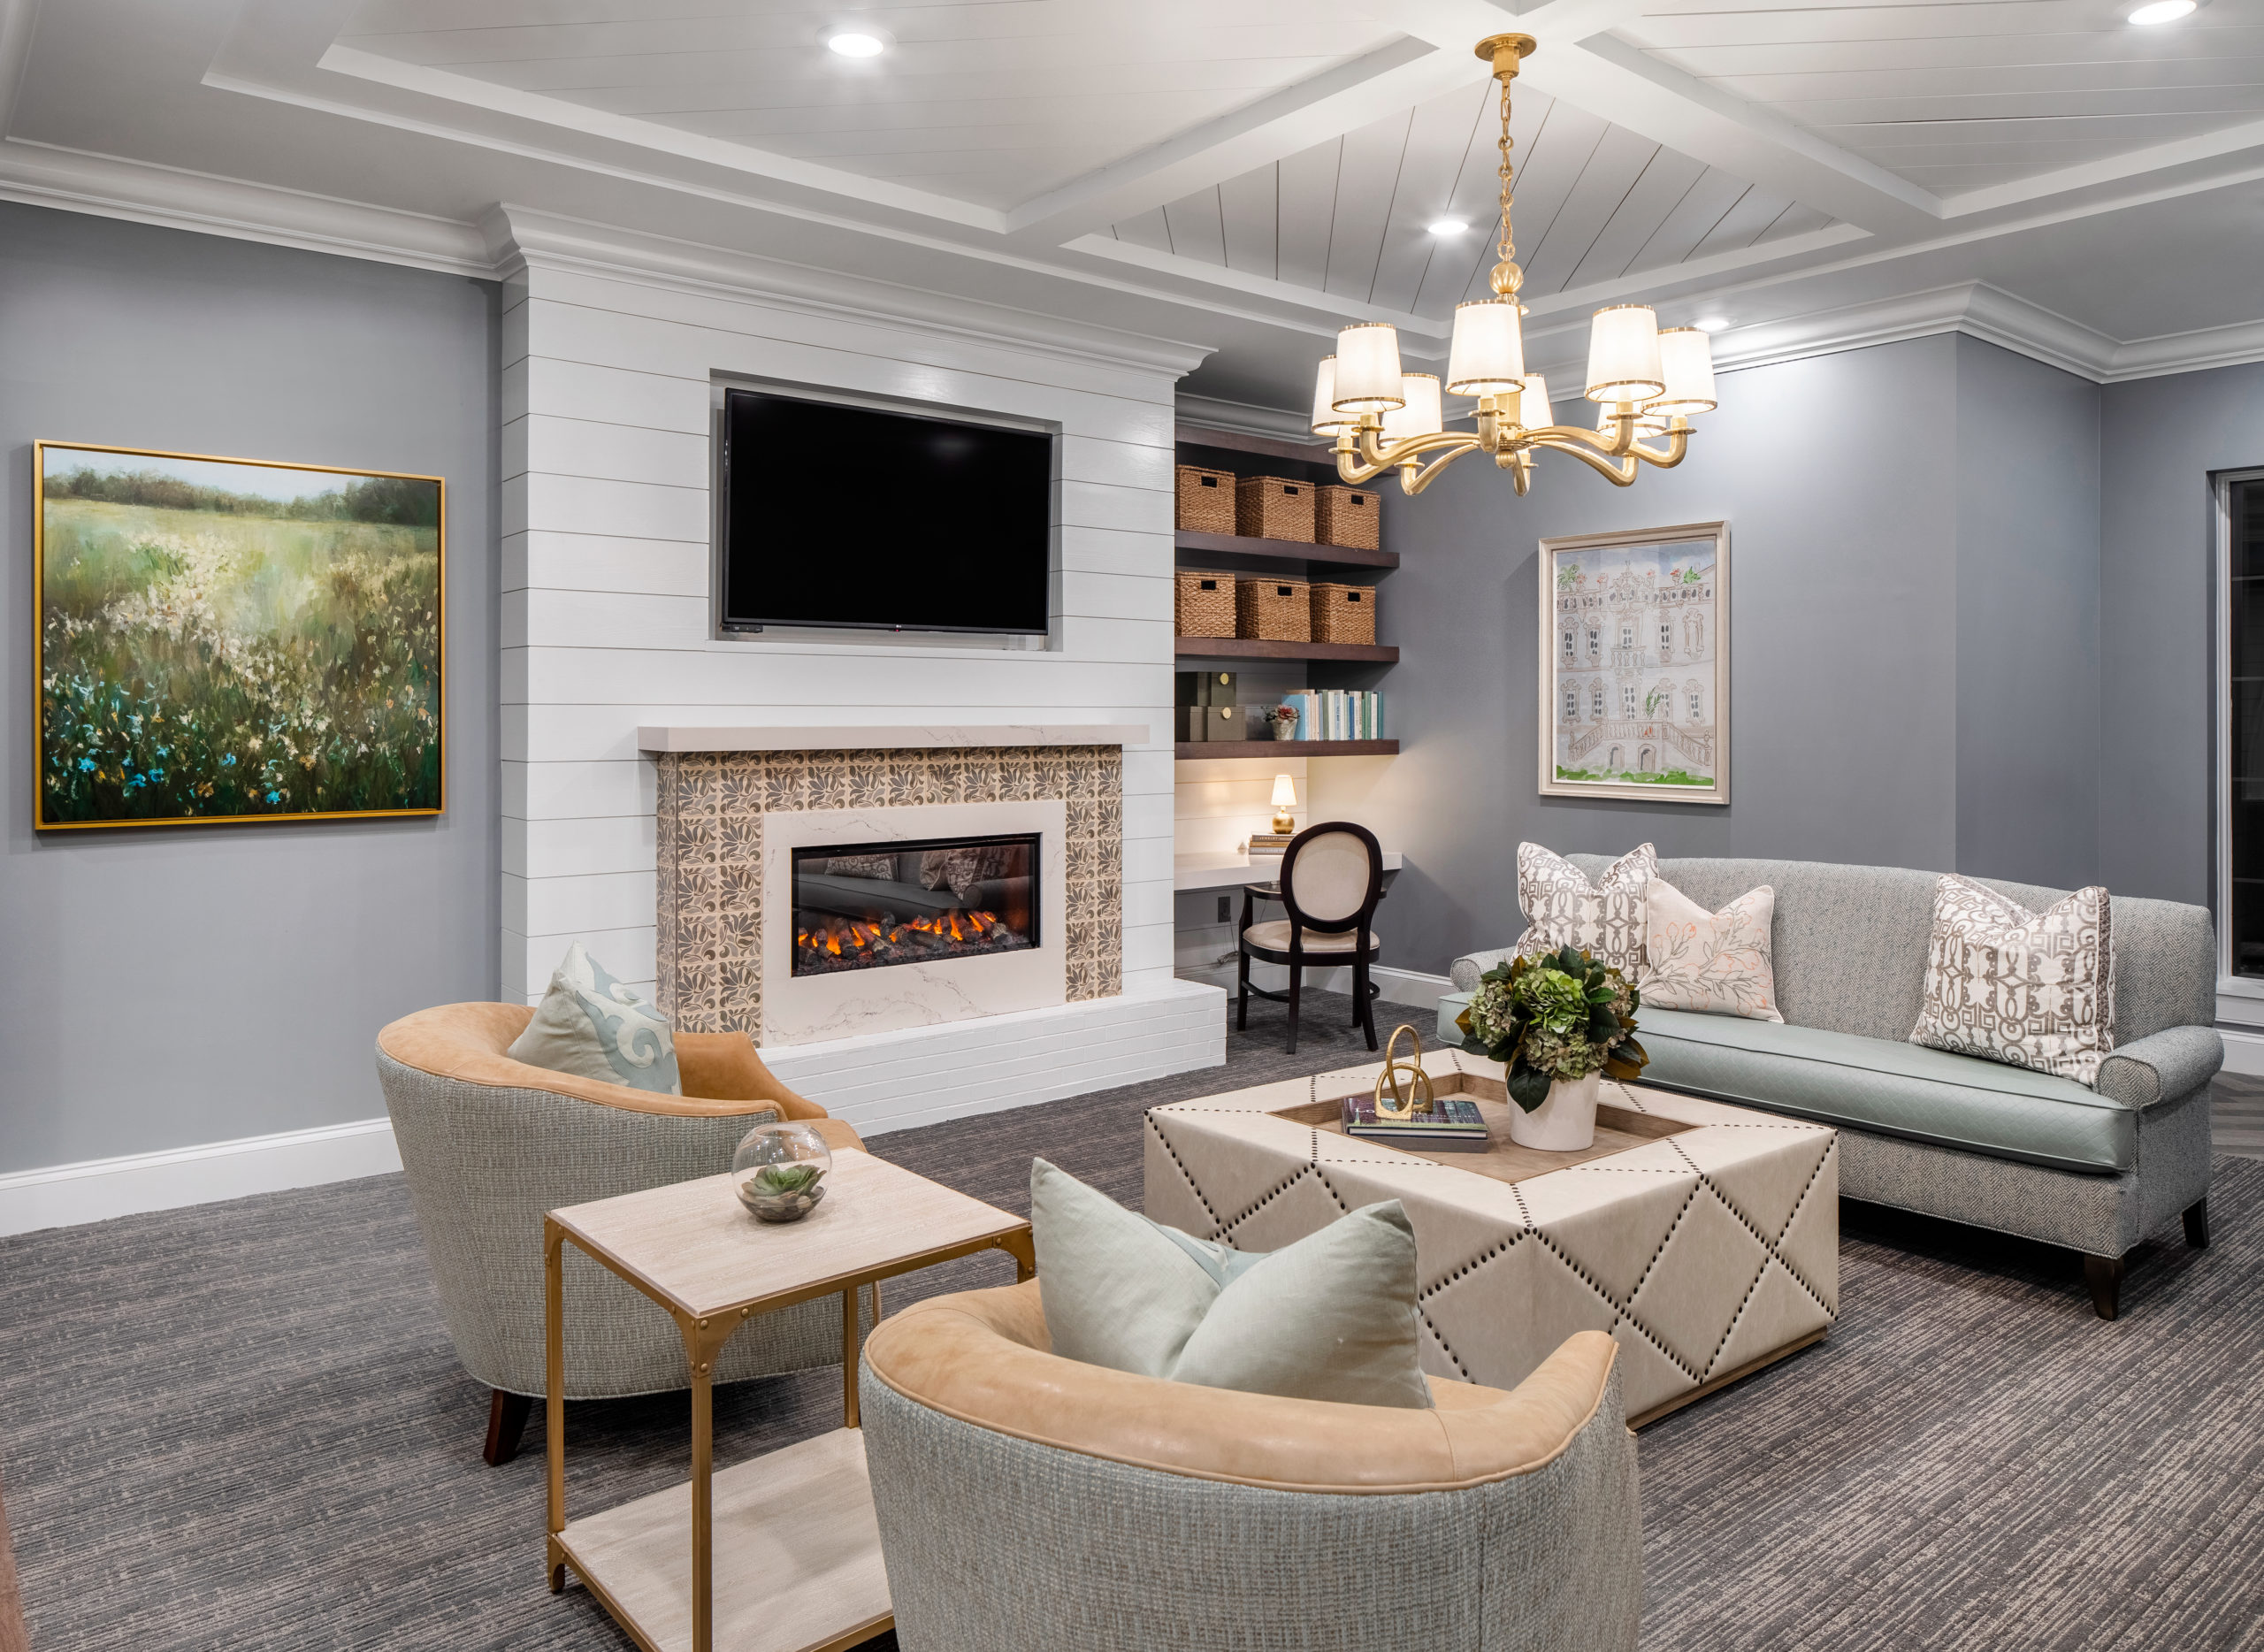 Longleaf common space with TV mounted above fireplace, couches and chairs with ottoman in front